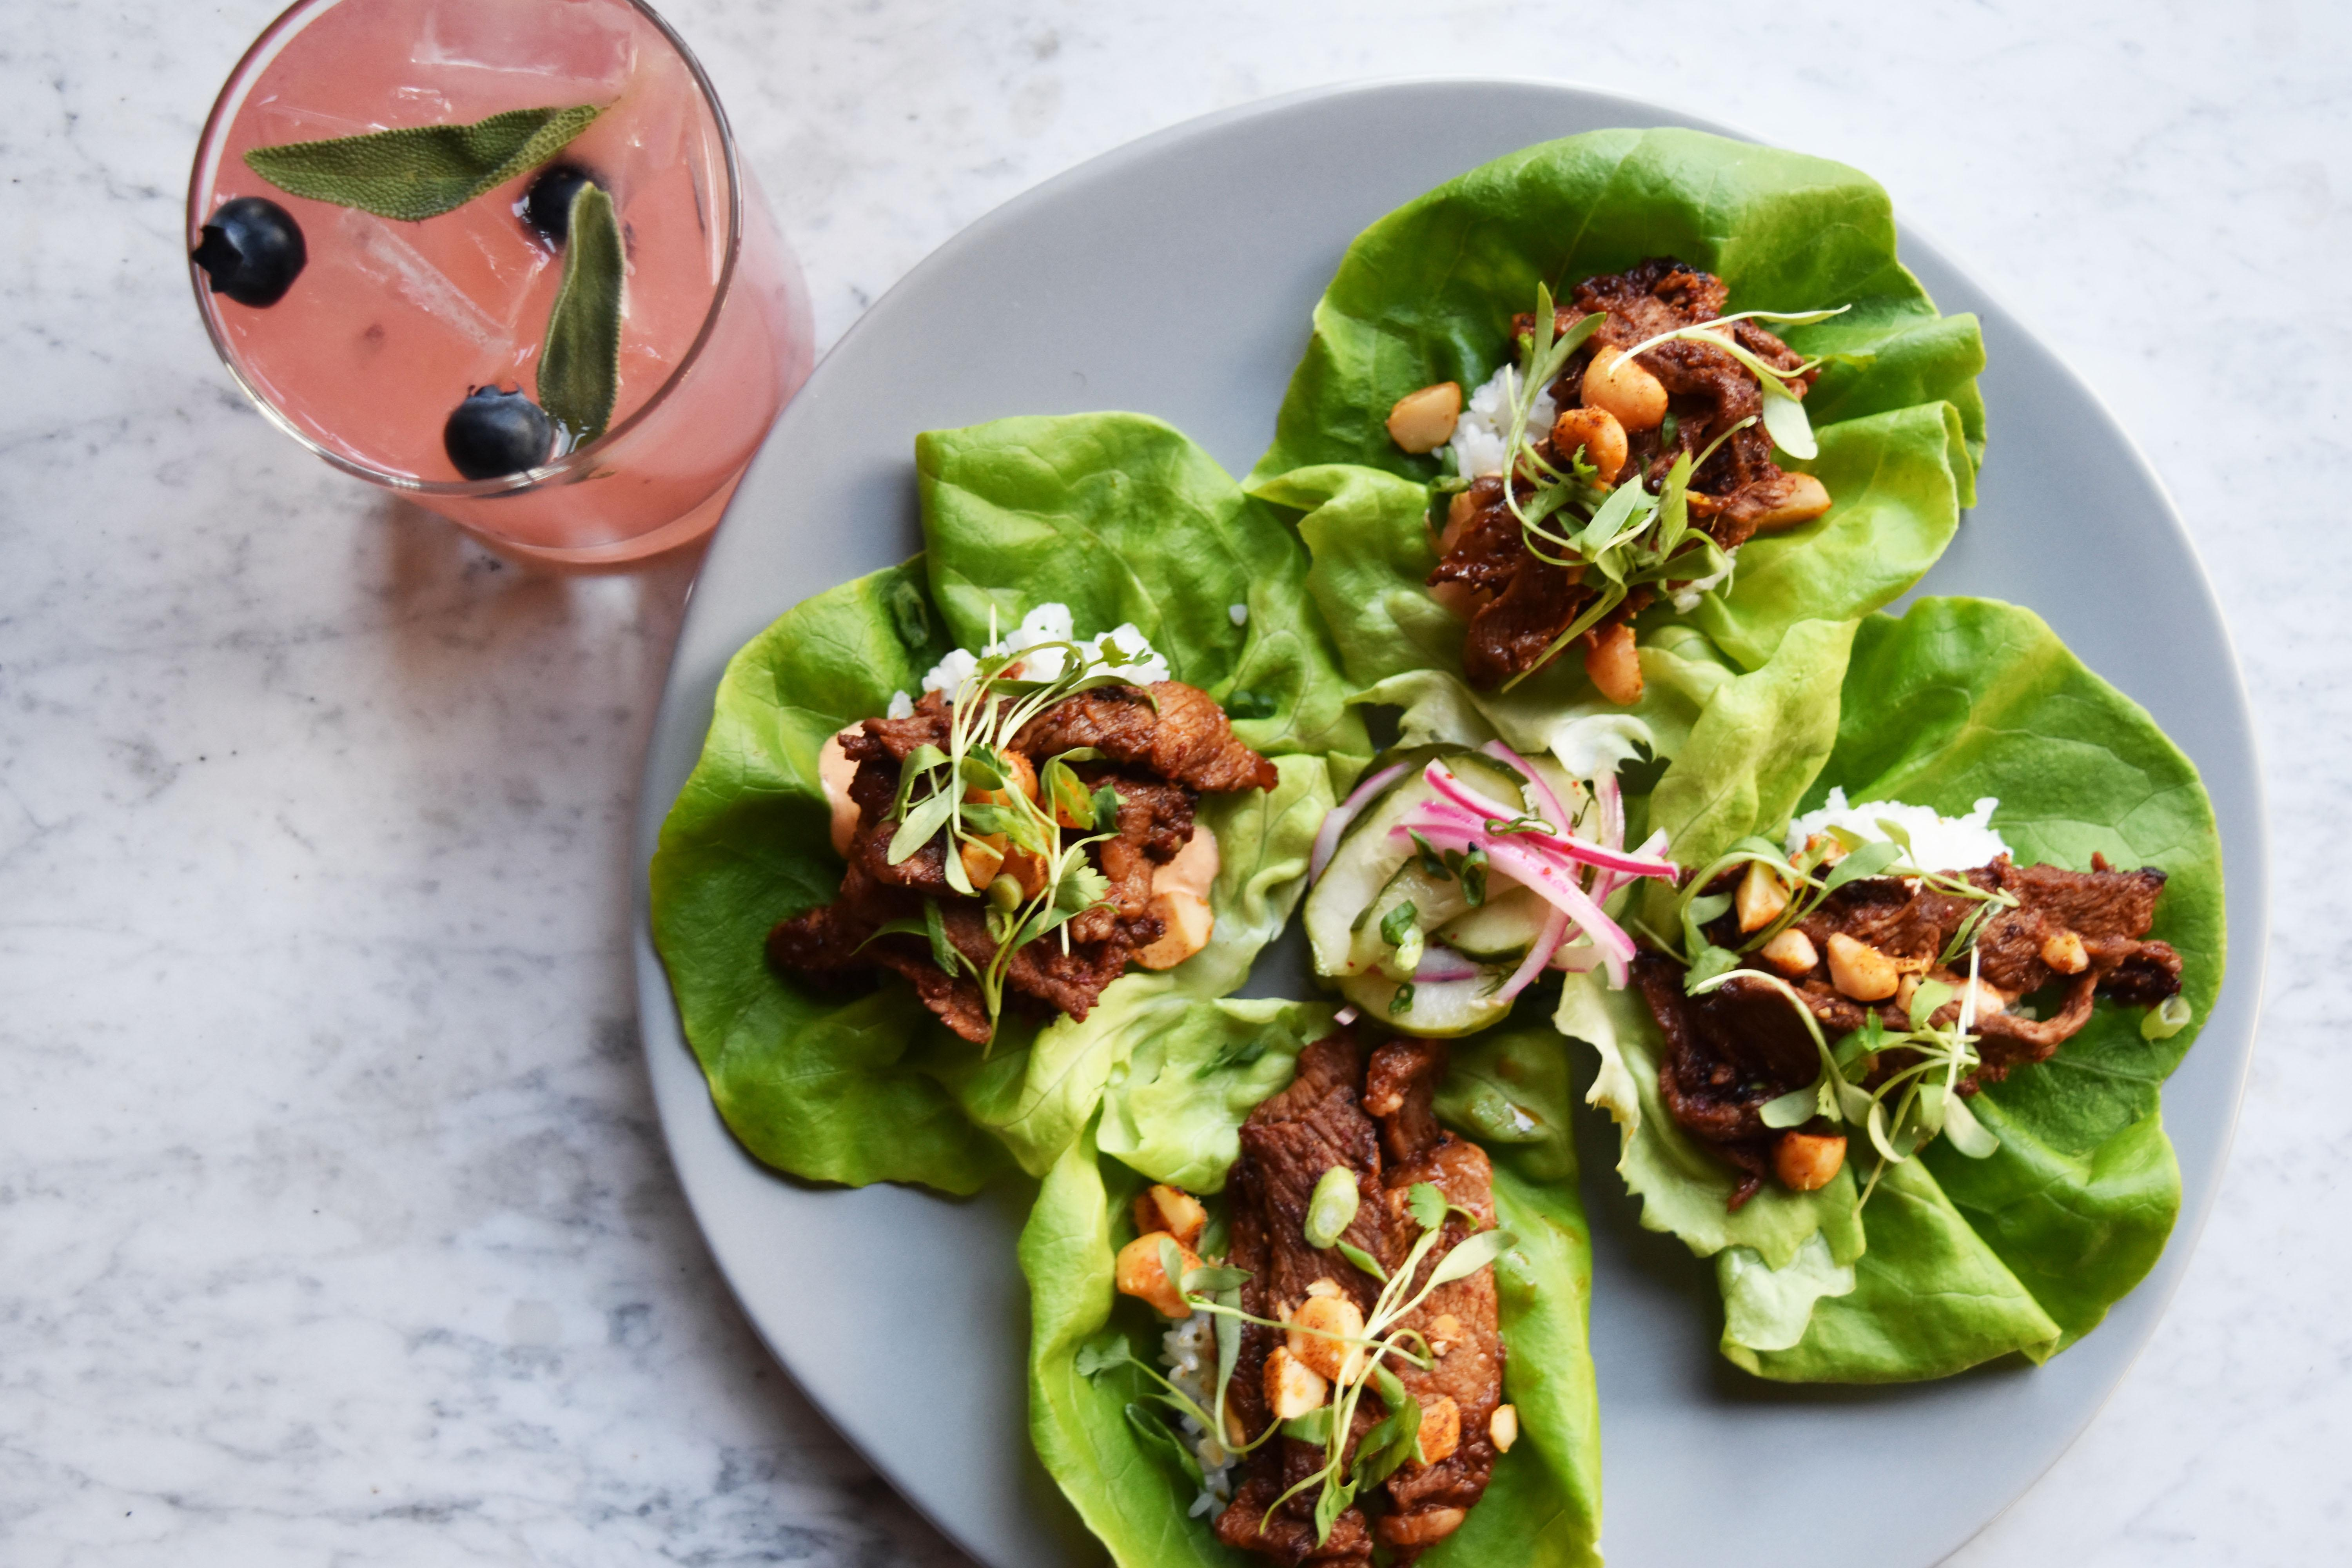 Bulgogi lettuce wraps from Circa, now open in Navy Yard. (Image: Courtesy MHG)